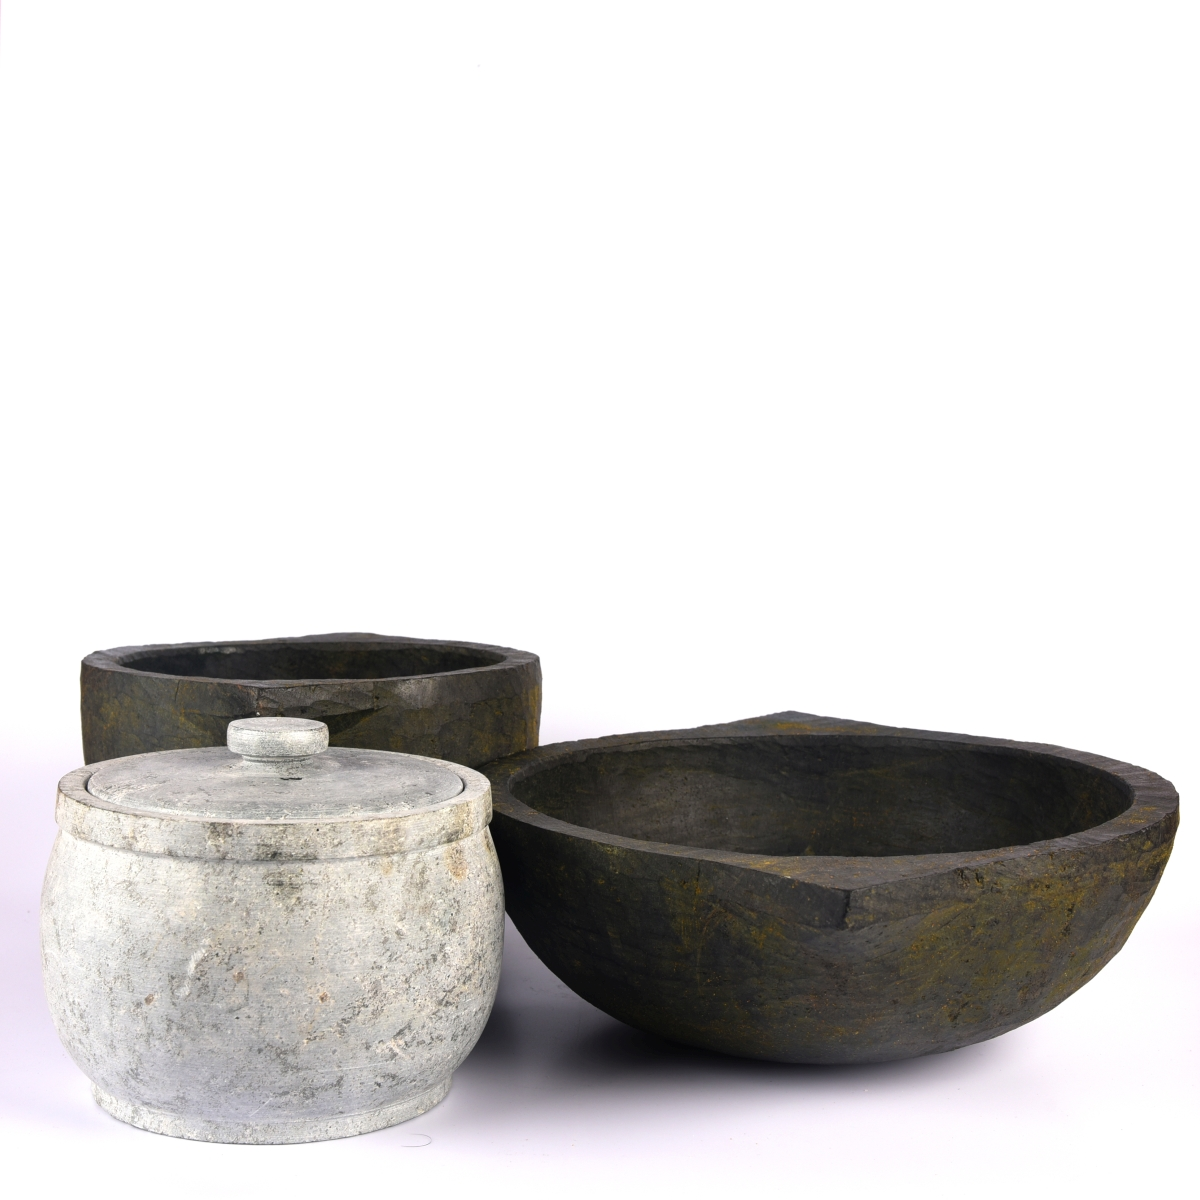 soapstone cookpot with kadai and curd jar